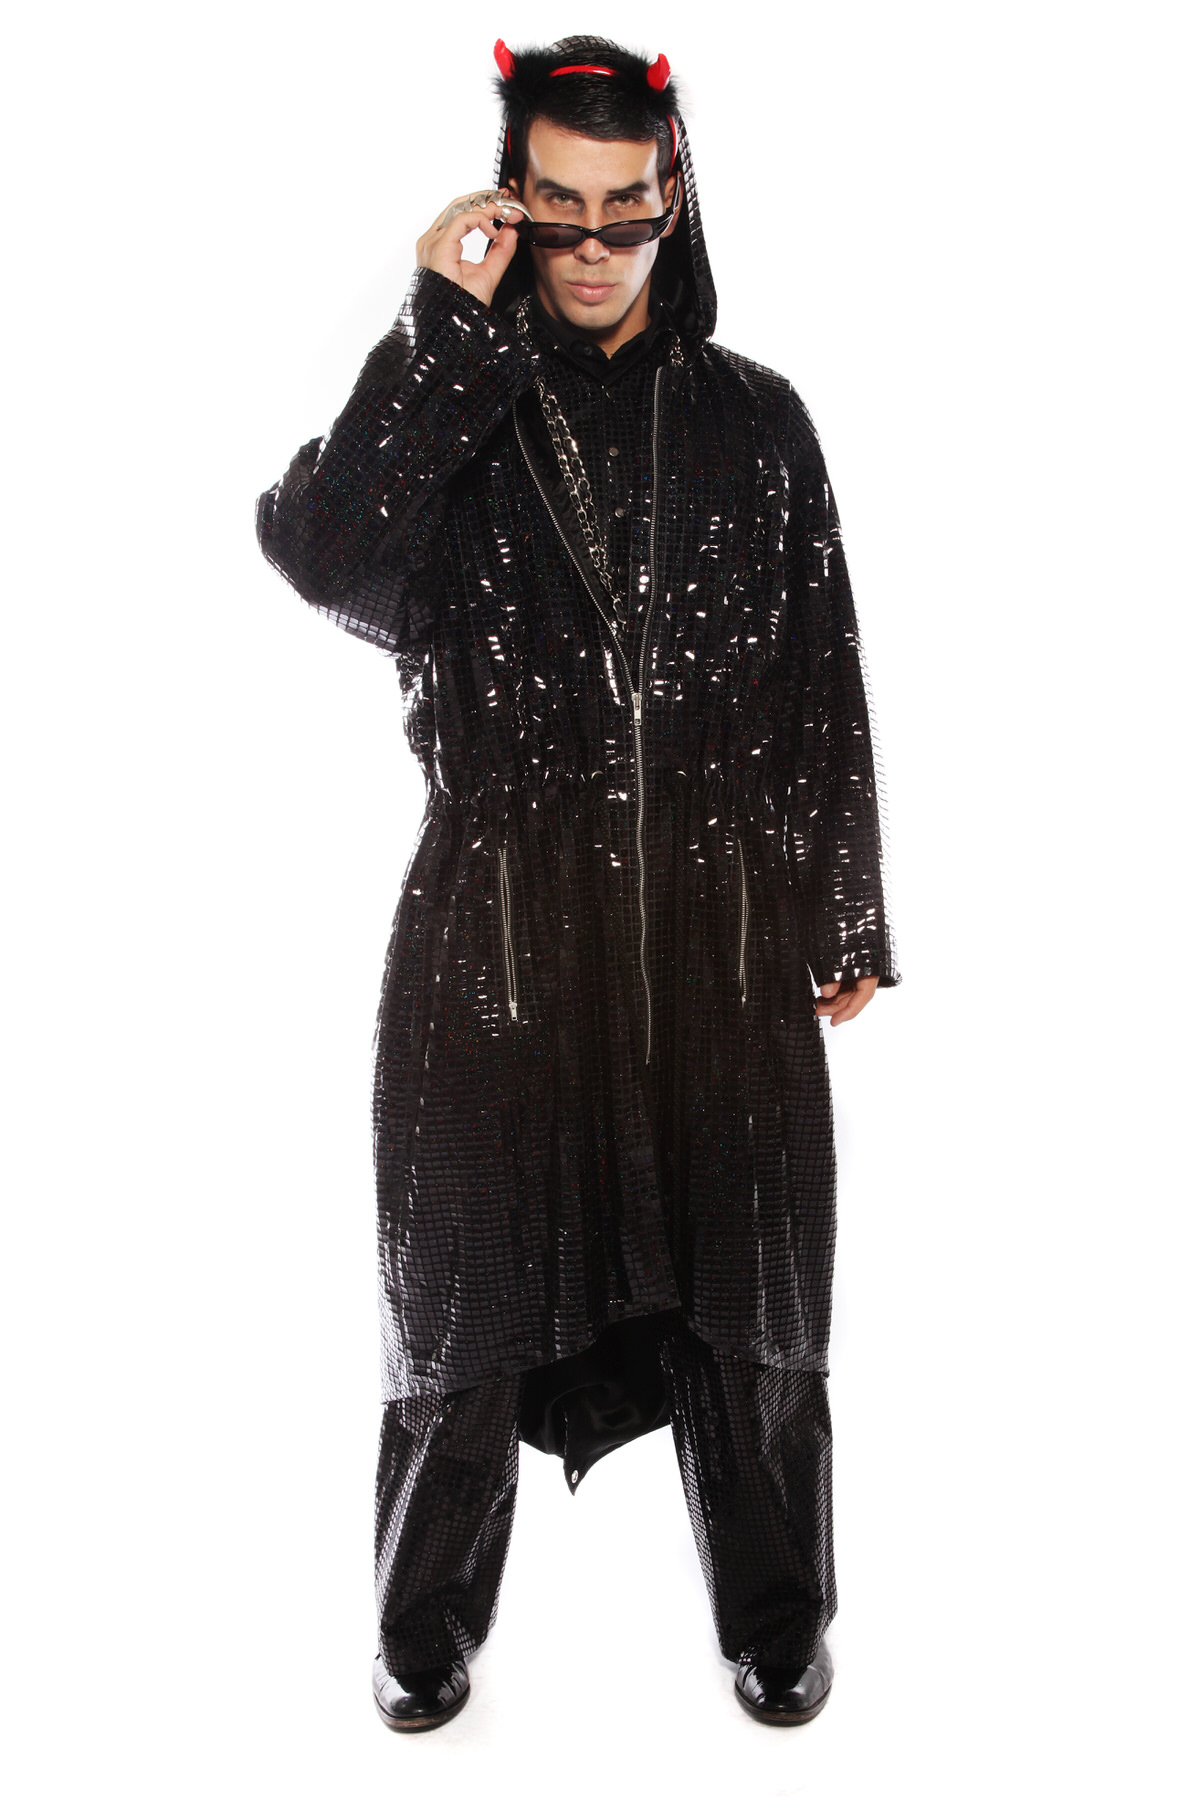 MATRIX DEVIL LONG BLACK SEQUIN COAT AND TROUSERS